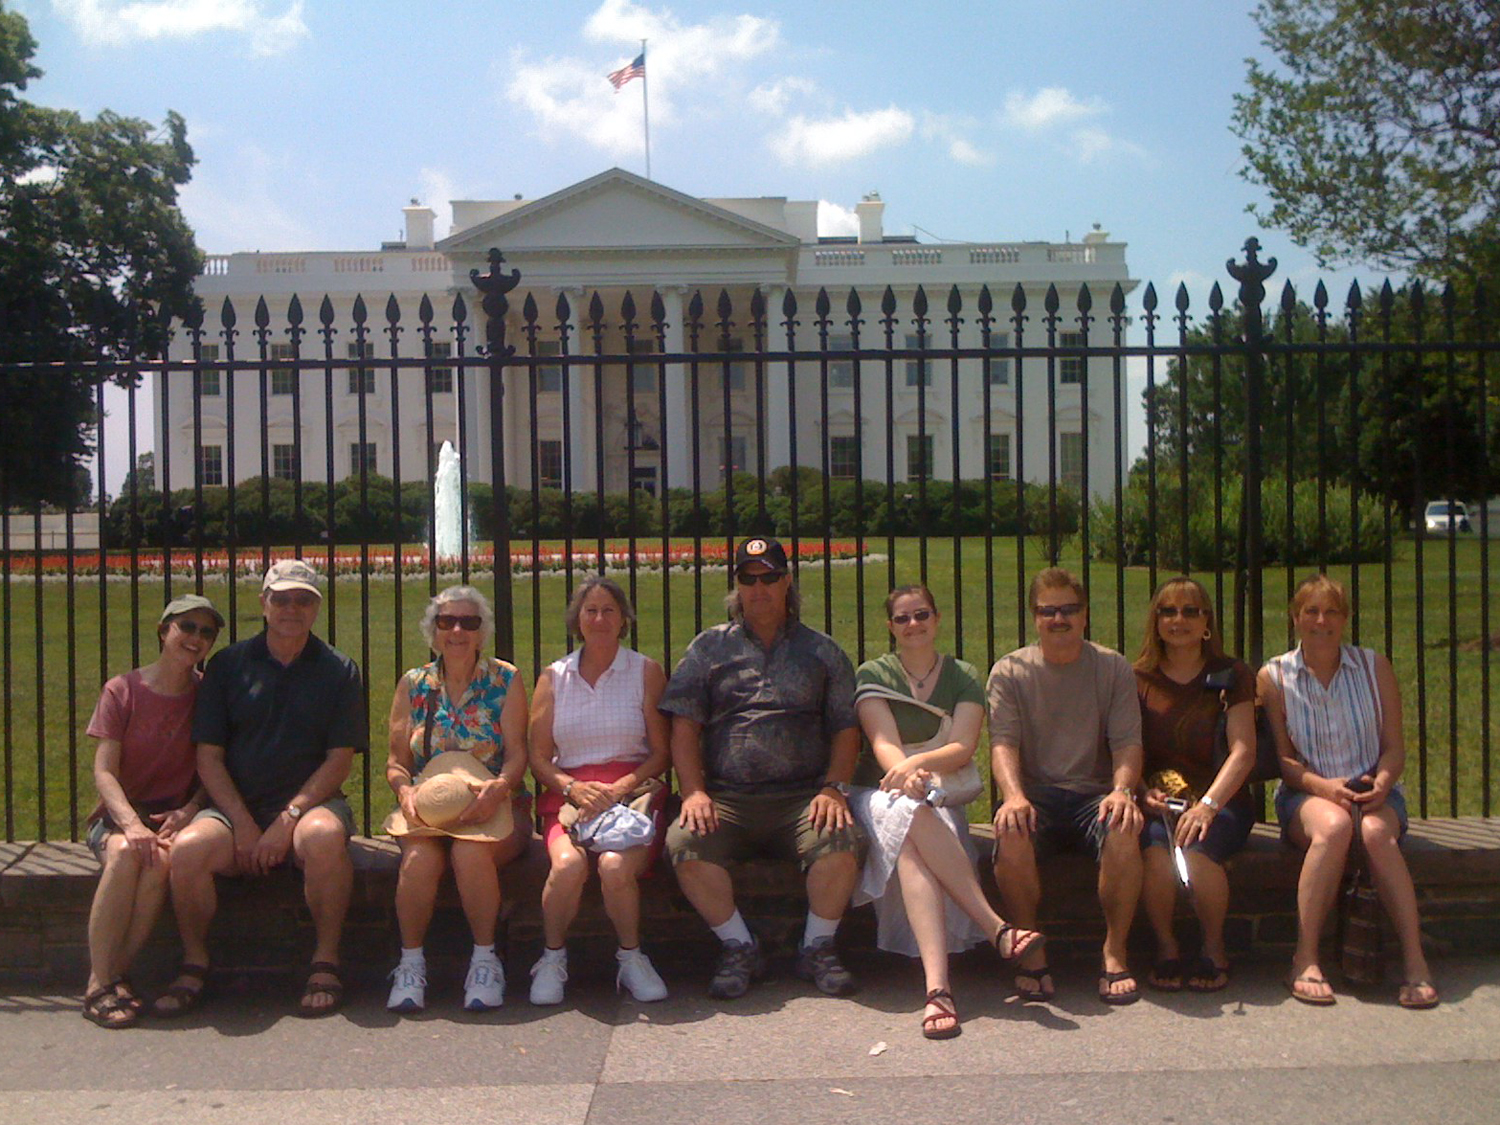 Some of my hanai family in the summer of 2008 in Washington, D. C., the year our mom Ivalee received the Jefferson Award.